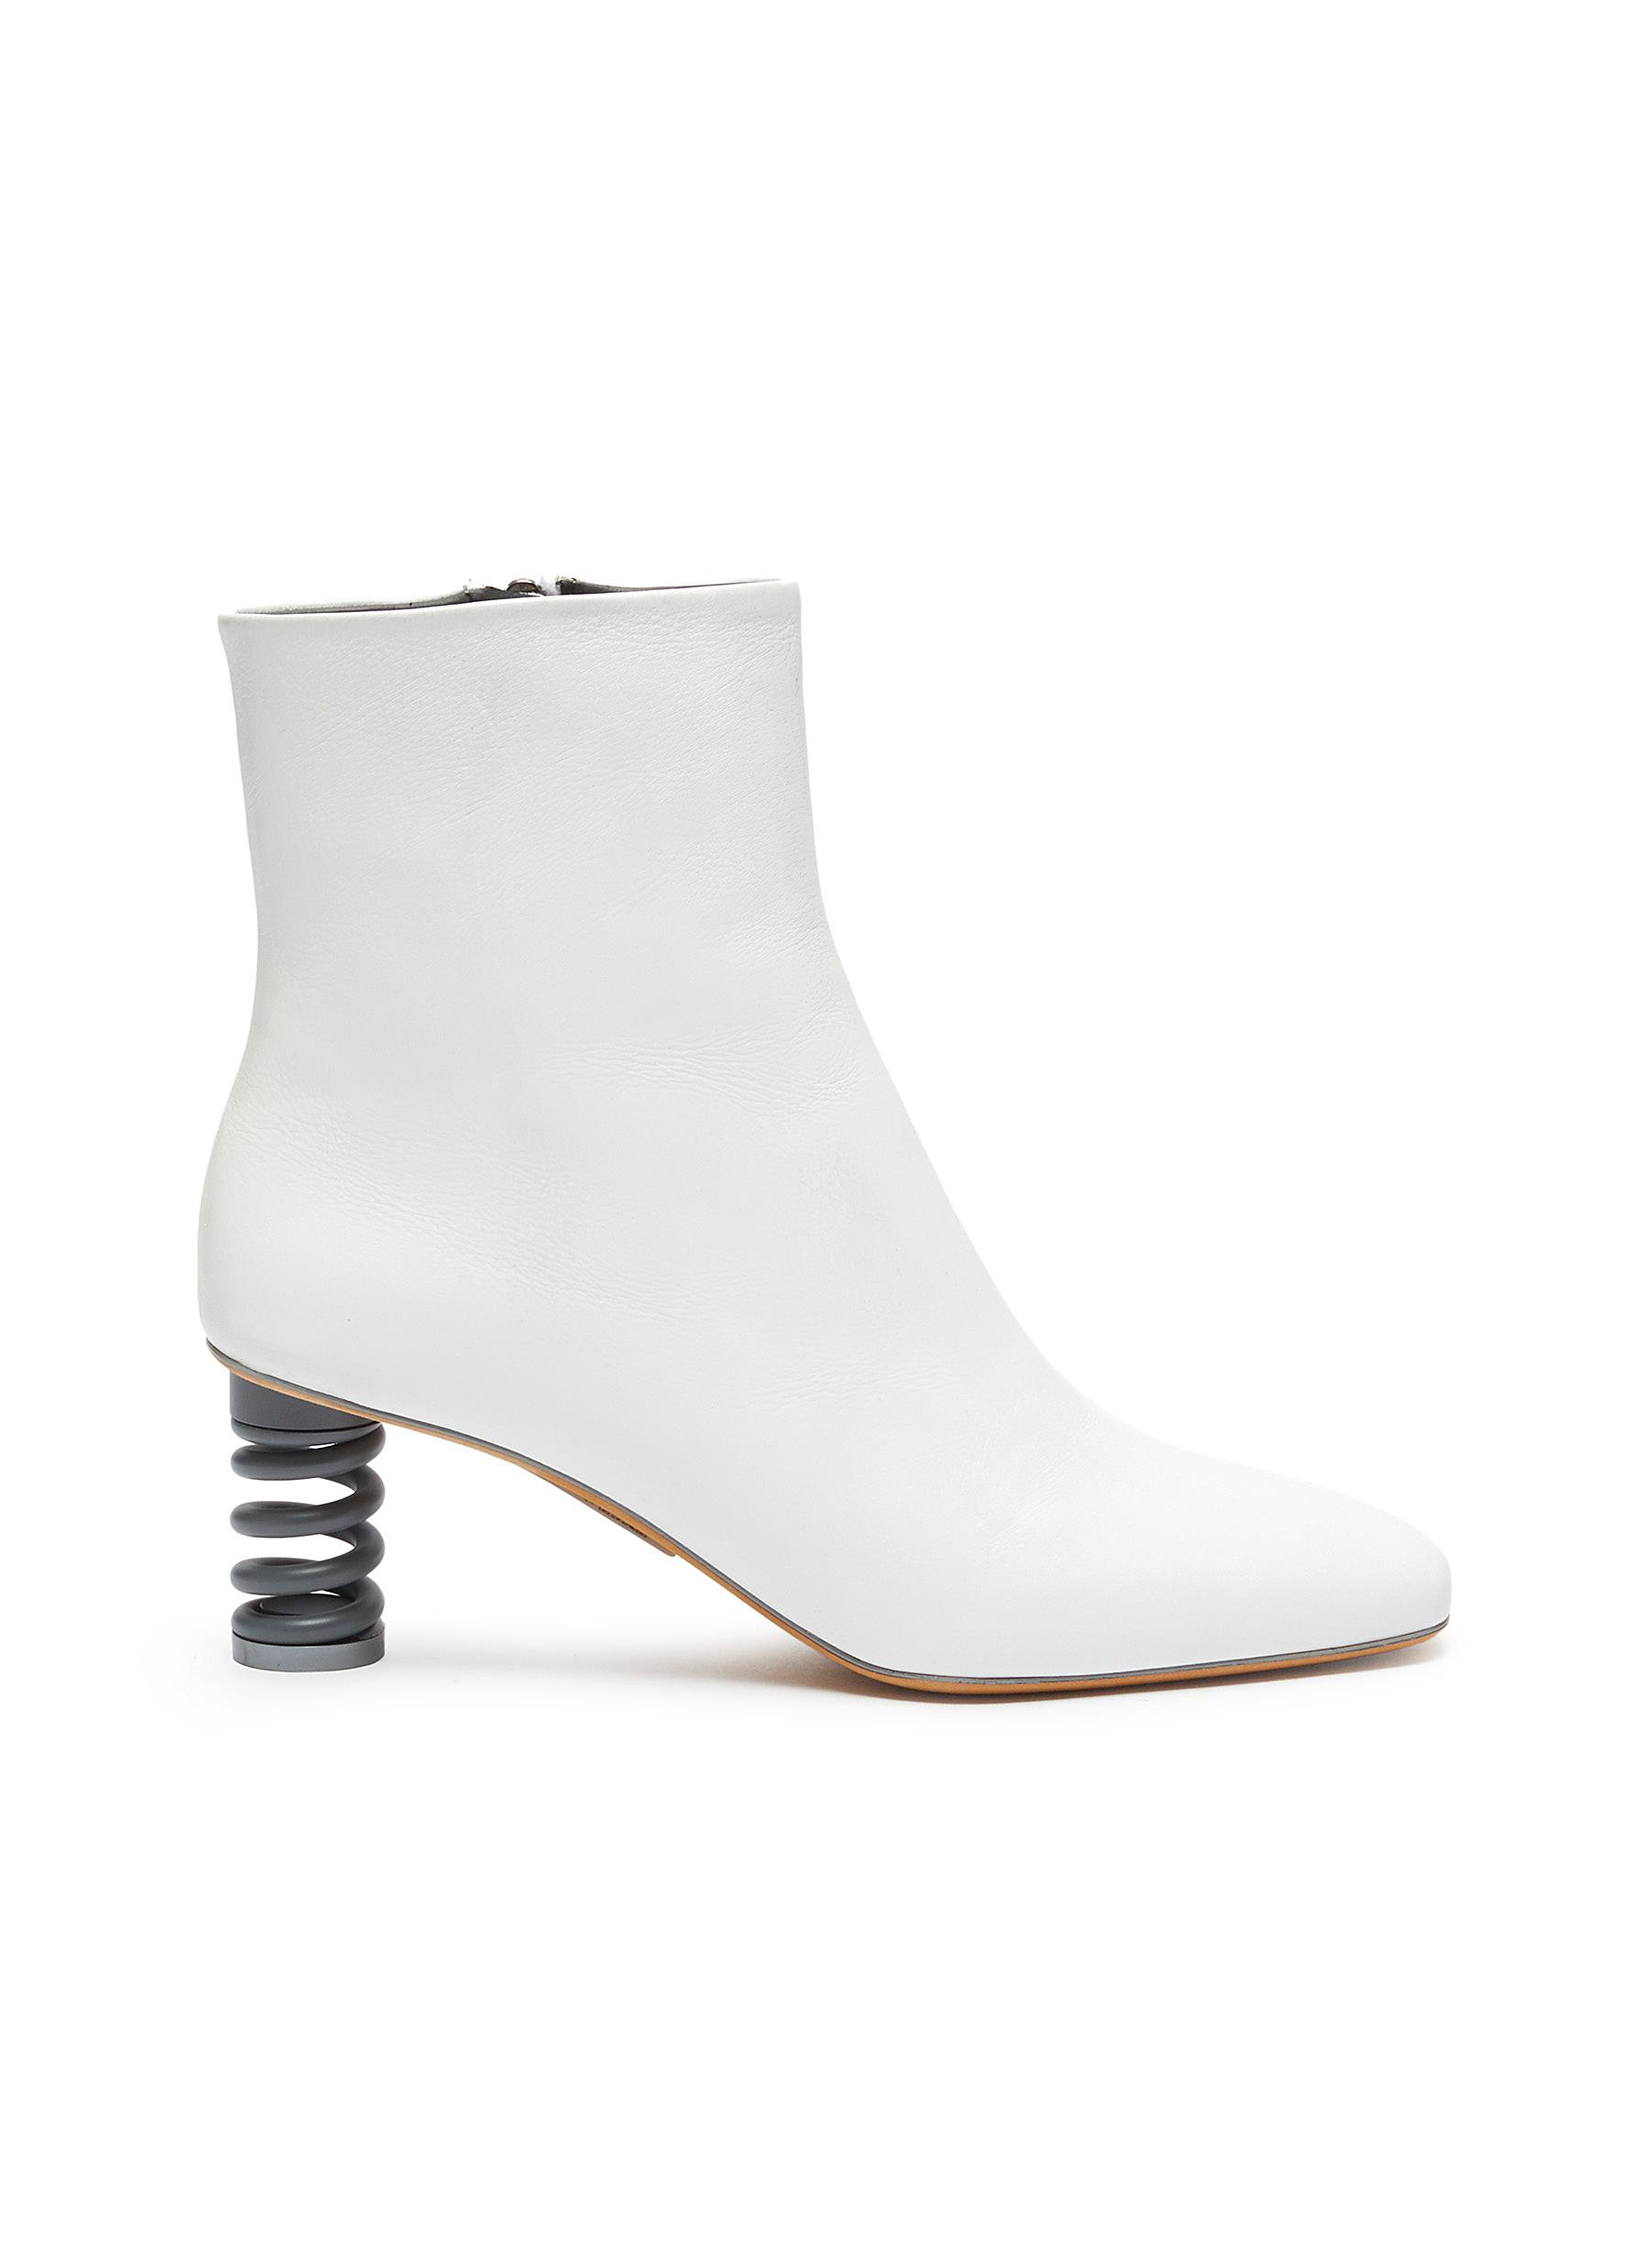 Molla spring heel leather ankle boots by Gray Matters